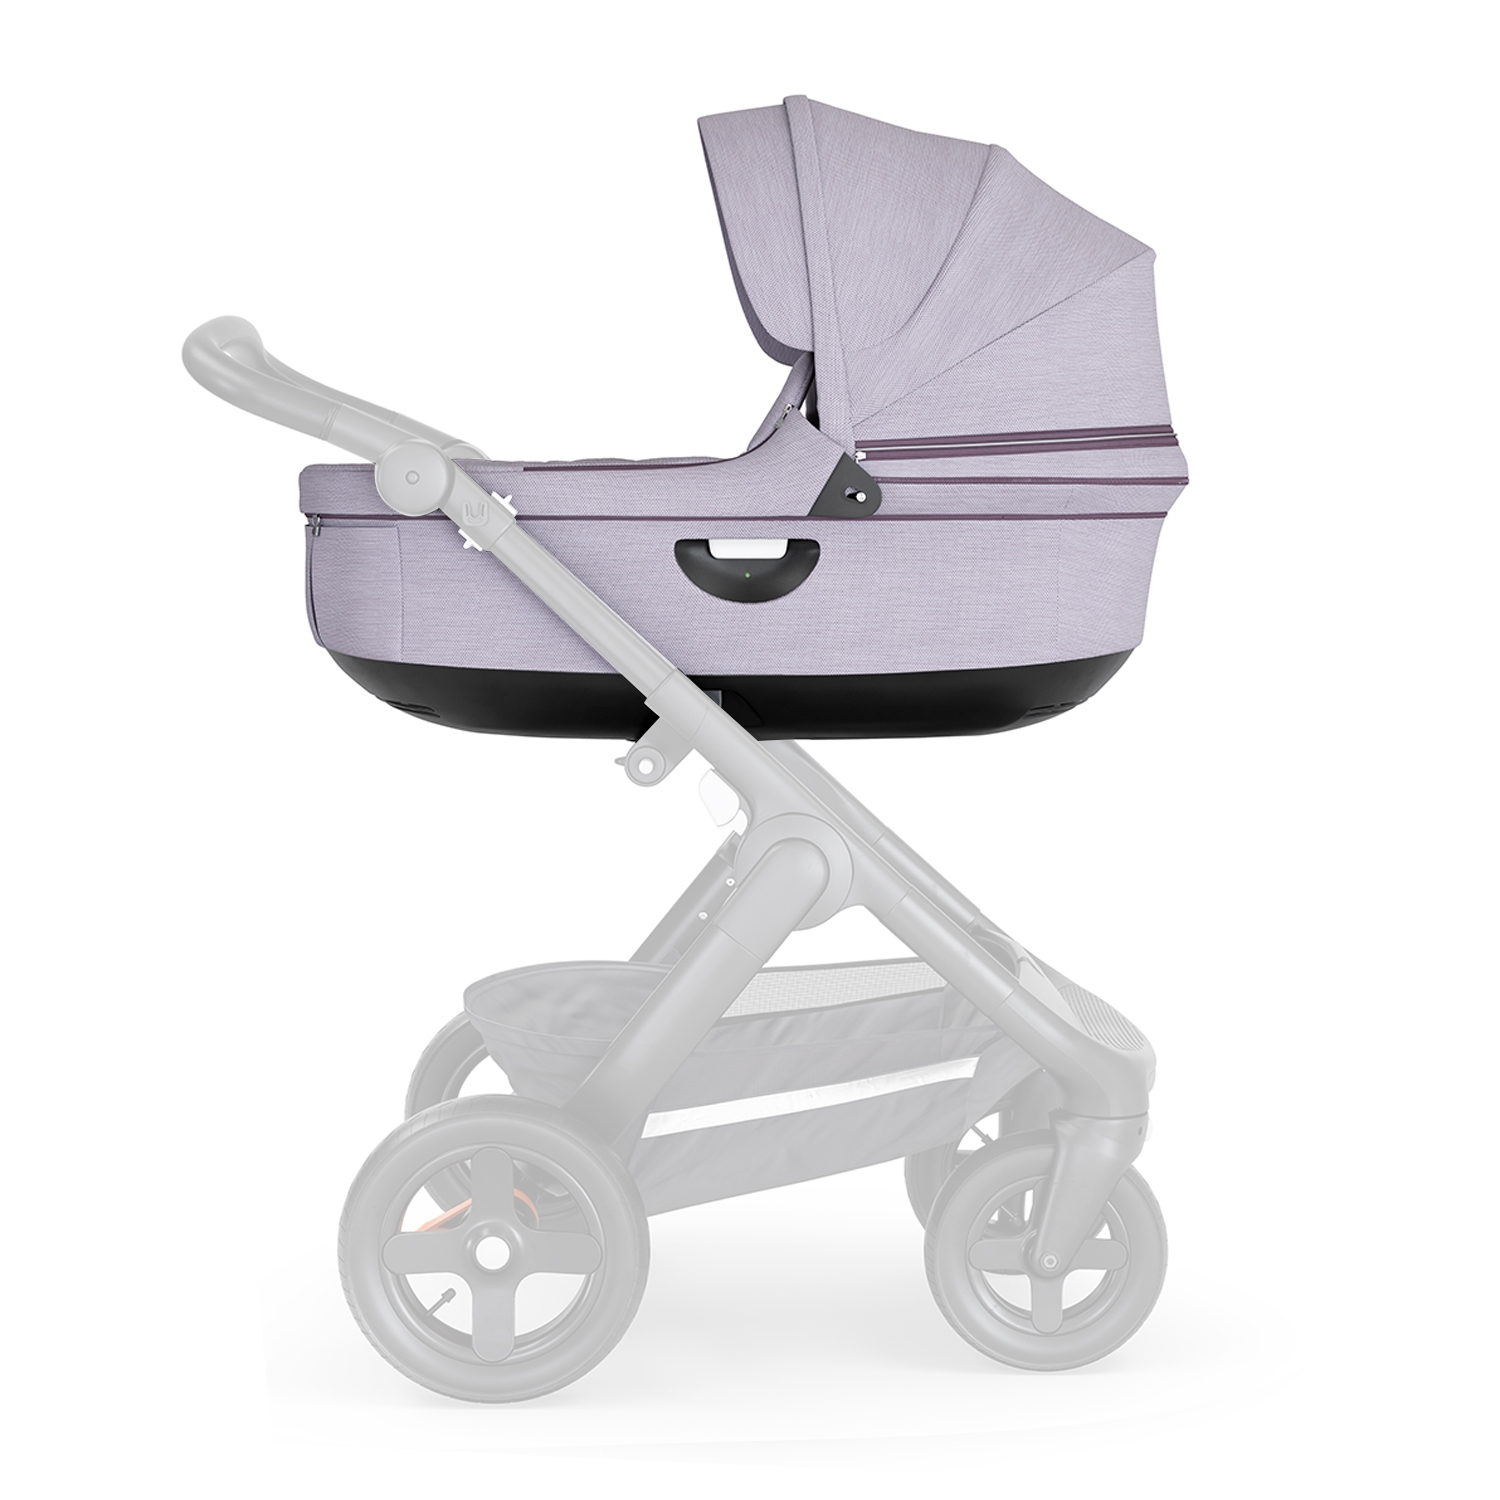 Люлька Stokke Trailz Black Brushed Lilac, фиолетовый